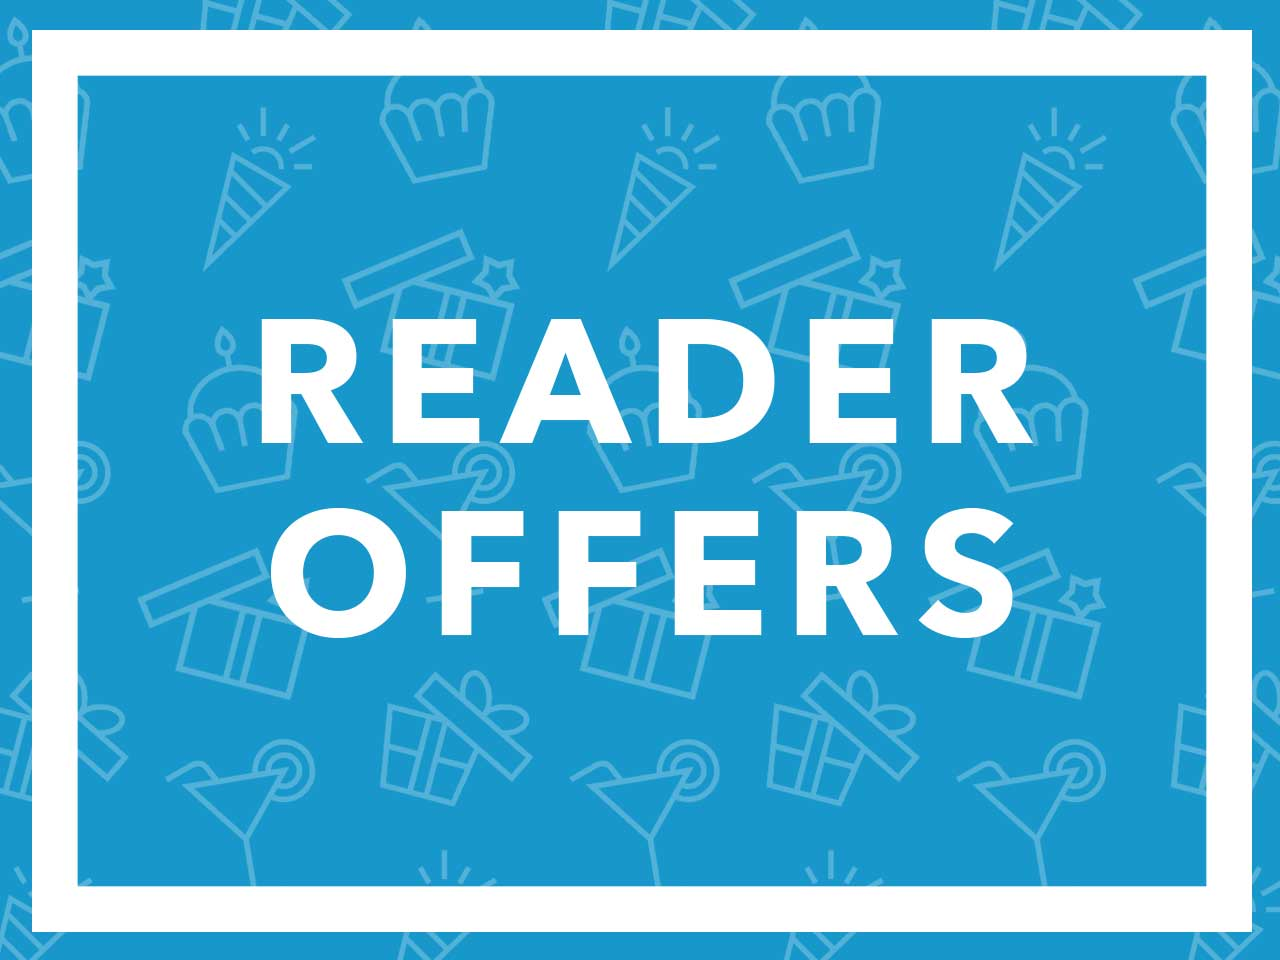 Special Reader Offers from Saga